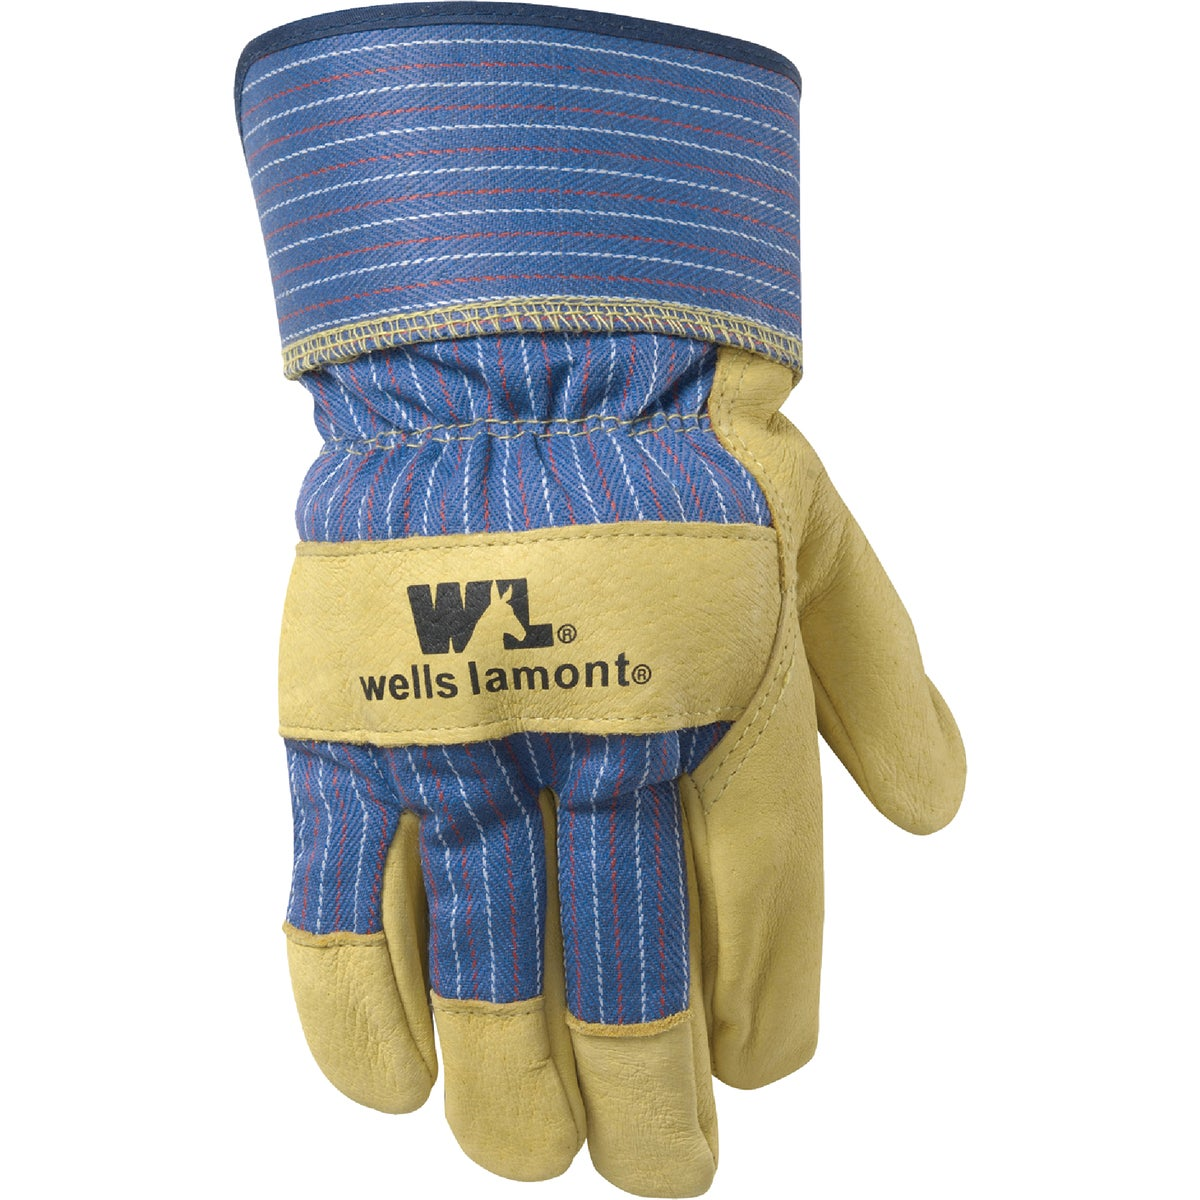 XL PIGSKIN PALM GLOVE - 3300XL by Wells Lamont